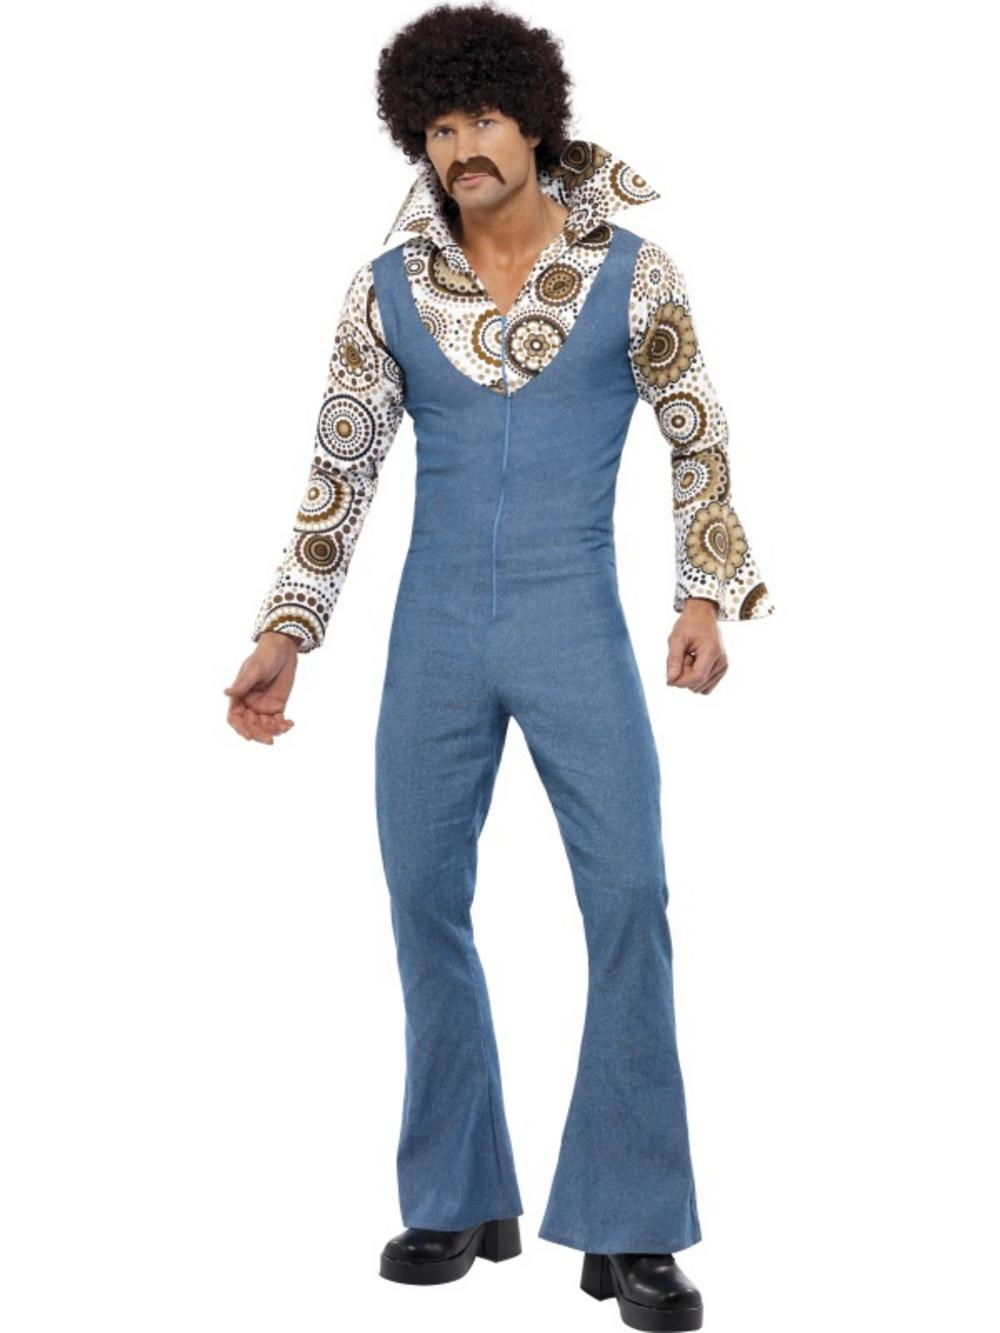 70s Groovy Disco Dancer Costume